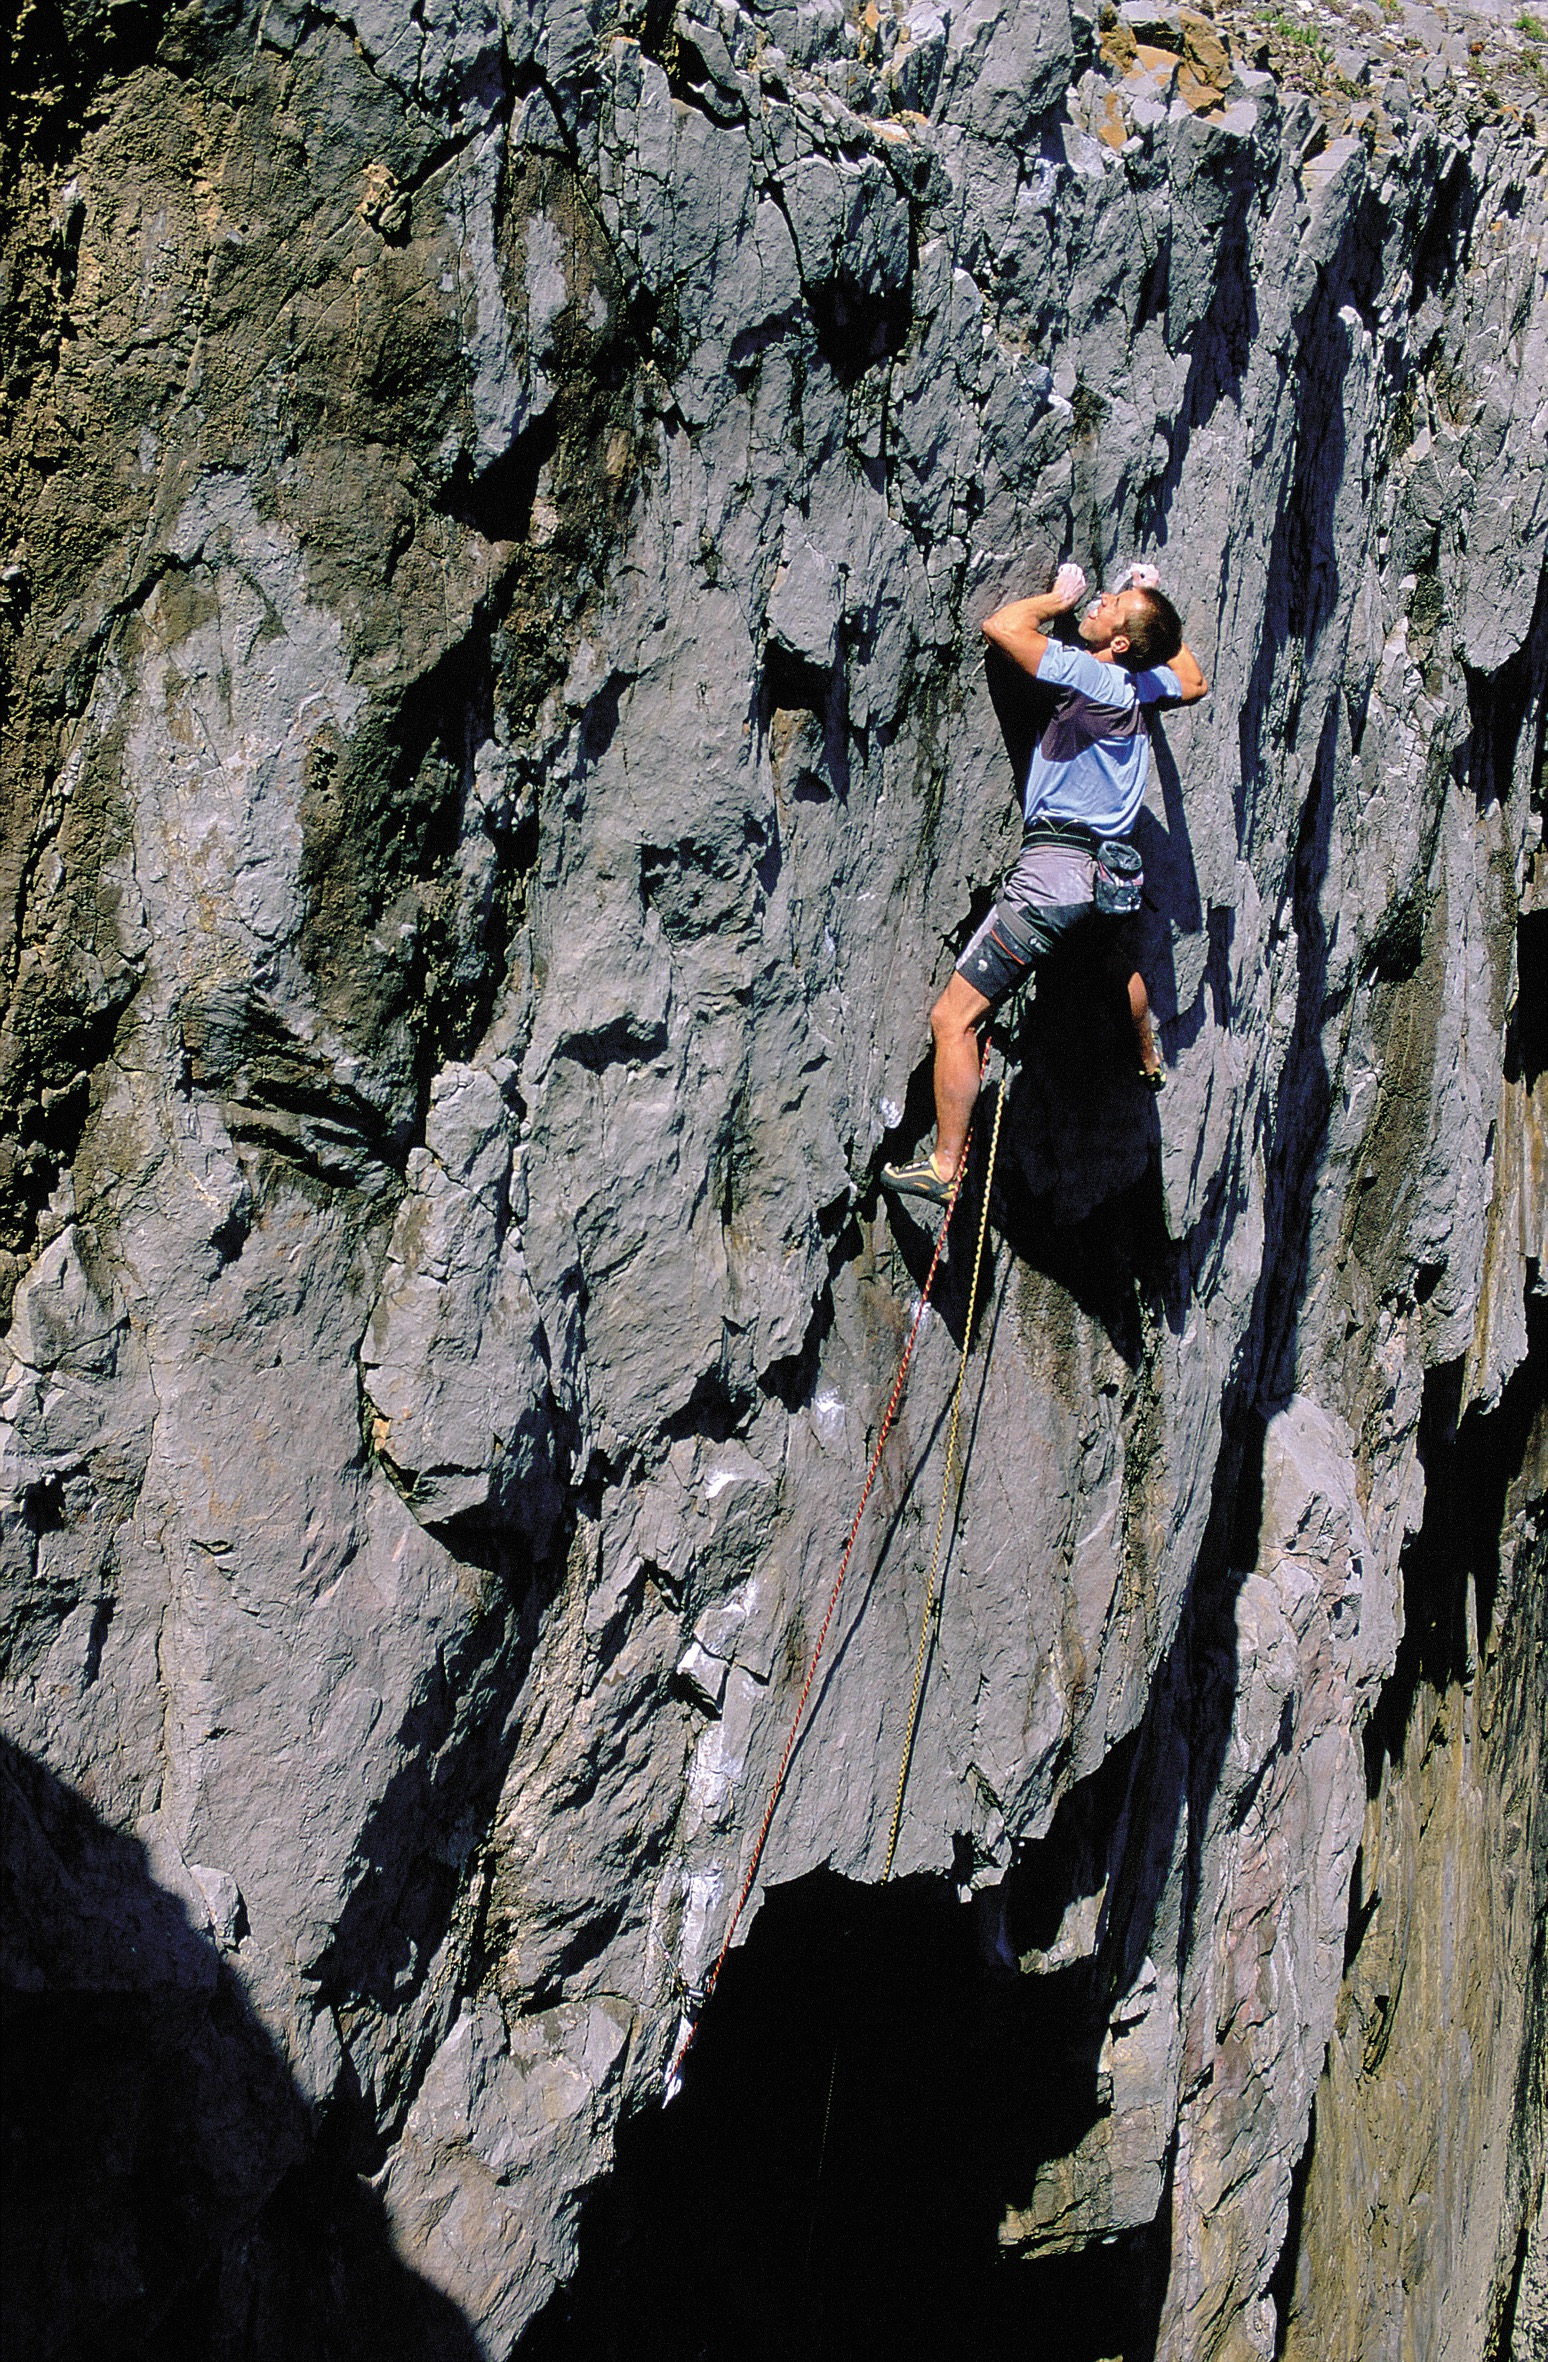 Racing very pumped arms up the headwall of Airdrawndagger E8 6c, Pembroke. First ascent in 2004.  Photo: Paul Twomey